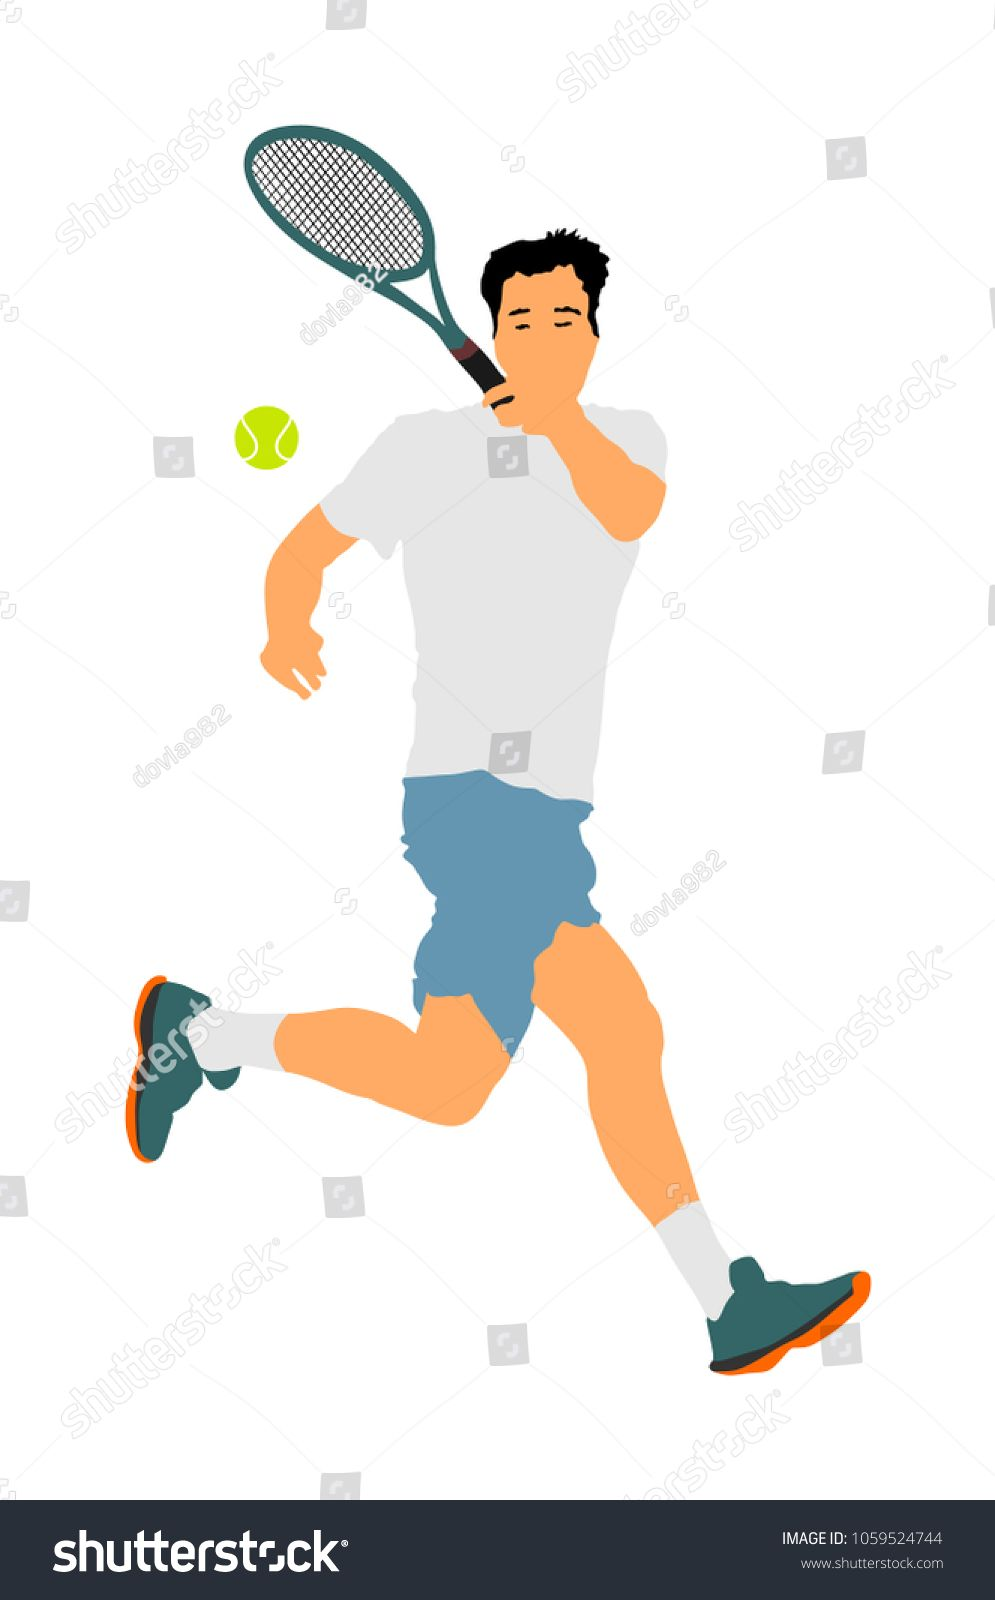 Man Tennis Player Vector Illustration Isolated On White Background Nsport Tennis Silhouette Isolated Man Recreation Tennis Players Anti Stress Sport Tennis